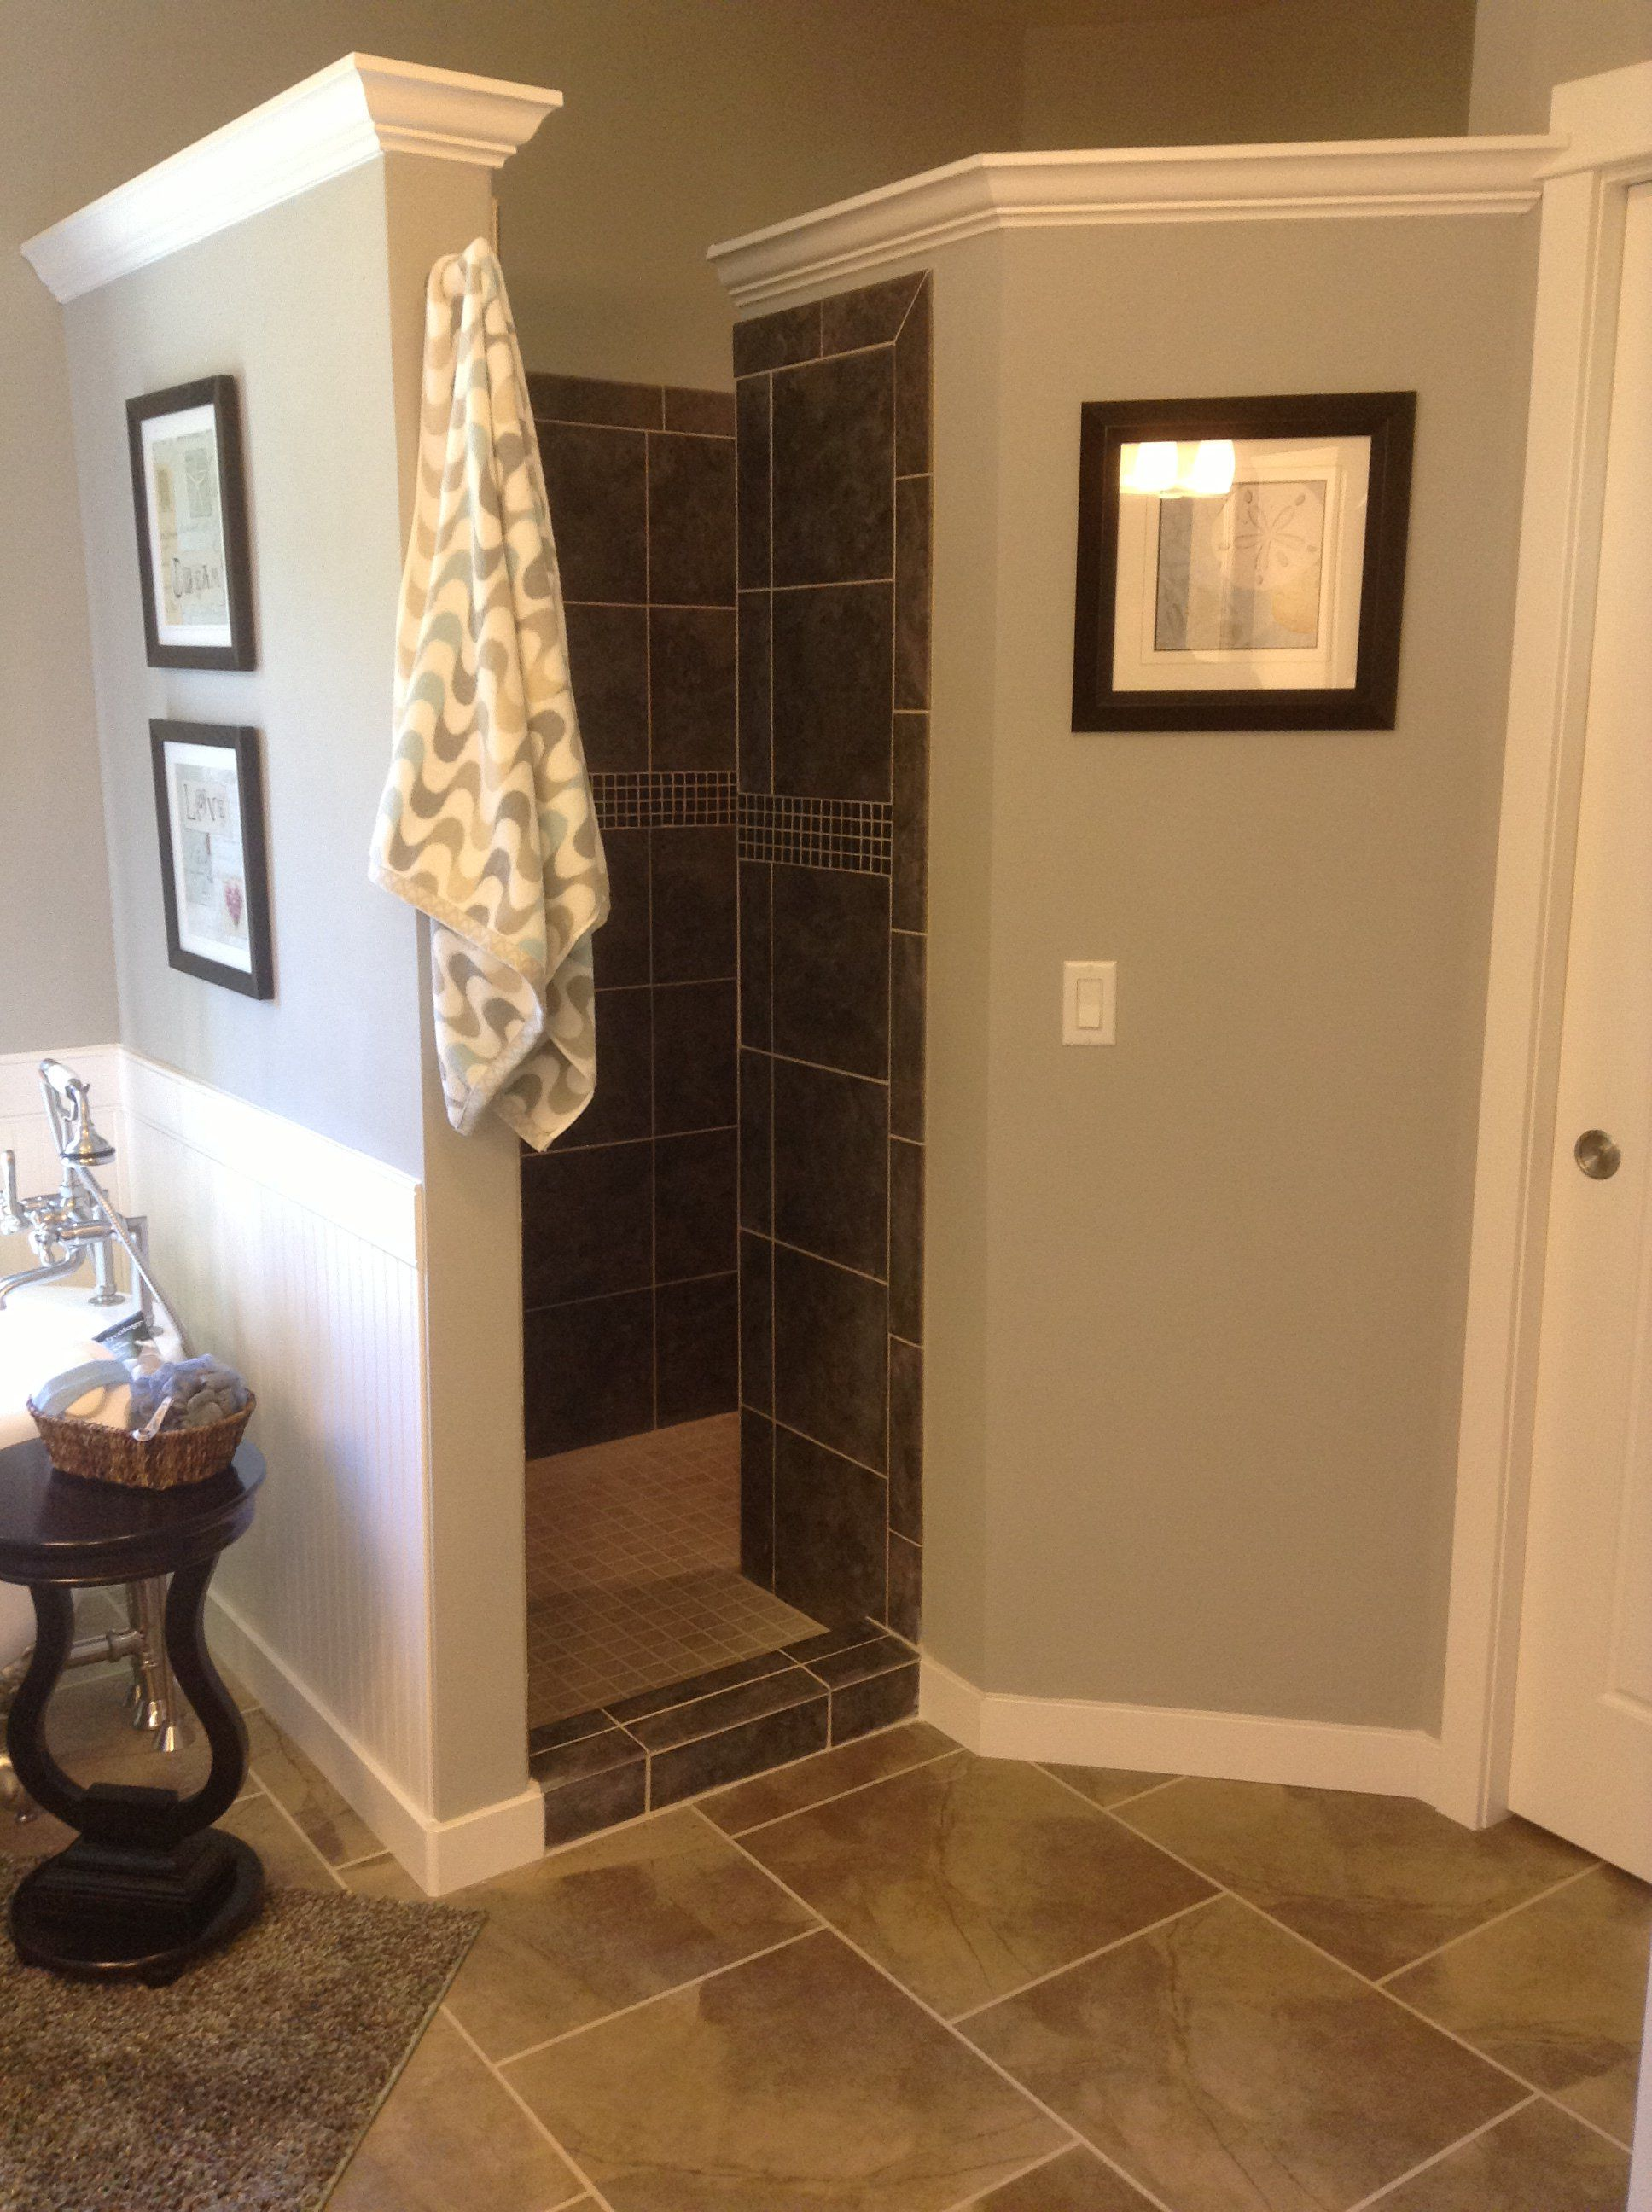 Walk in shower no door to clean so practical 210 for Bathroom door ideas